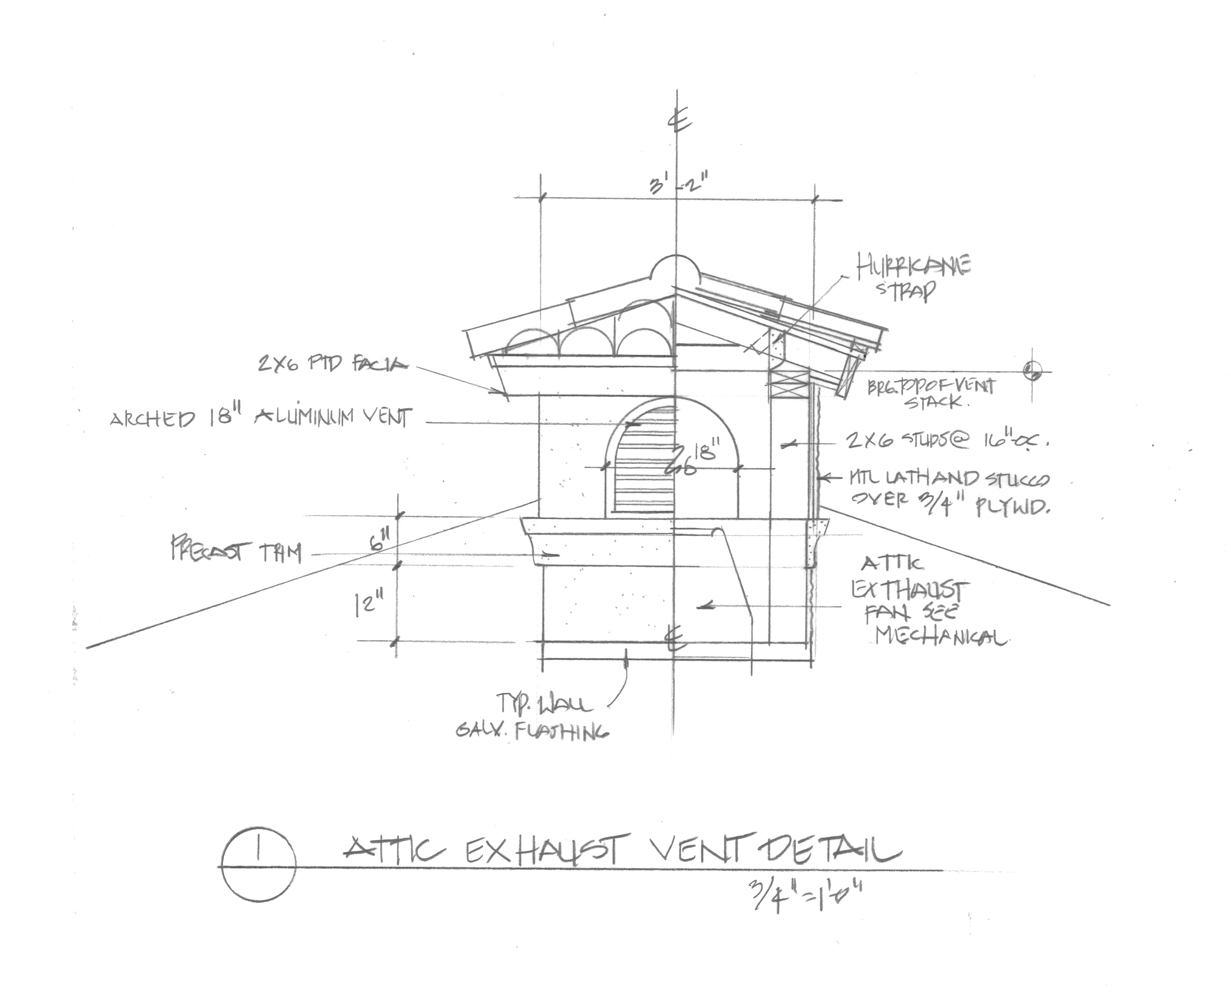 Hamill - Sketch_Attic Exhaust Vent Detail.jpg